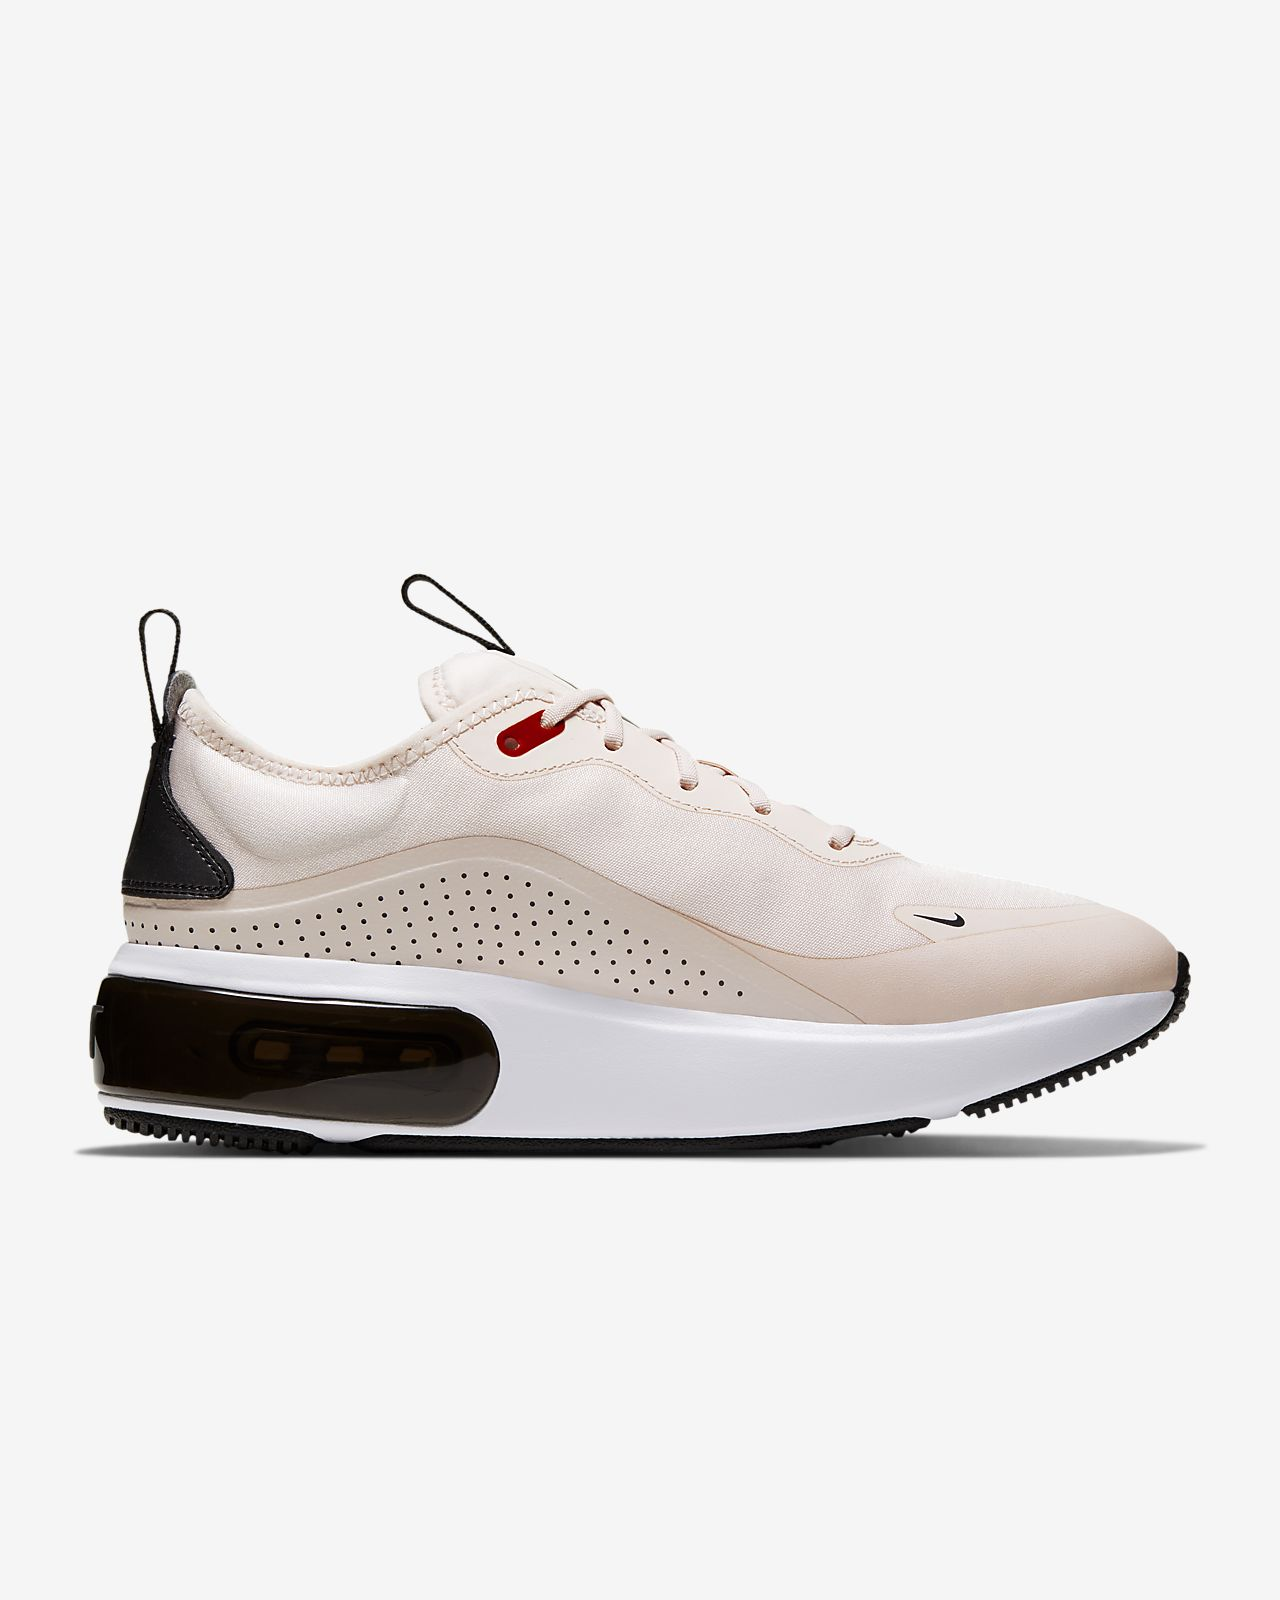 nike air max online shopping south africa